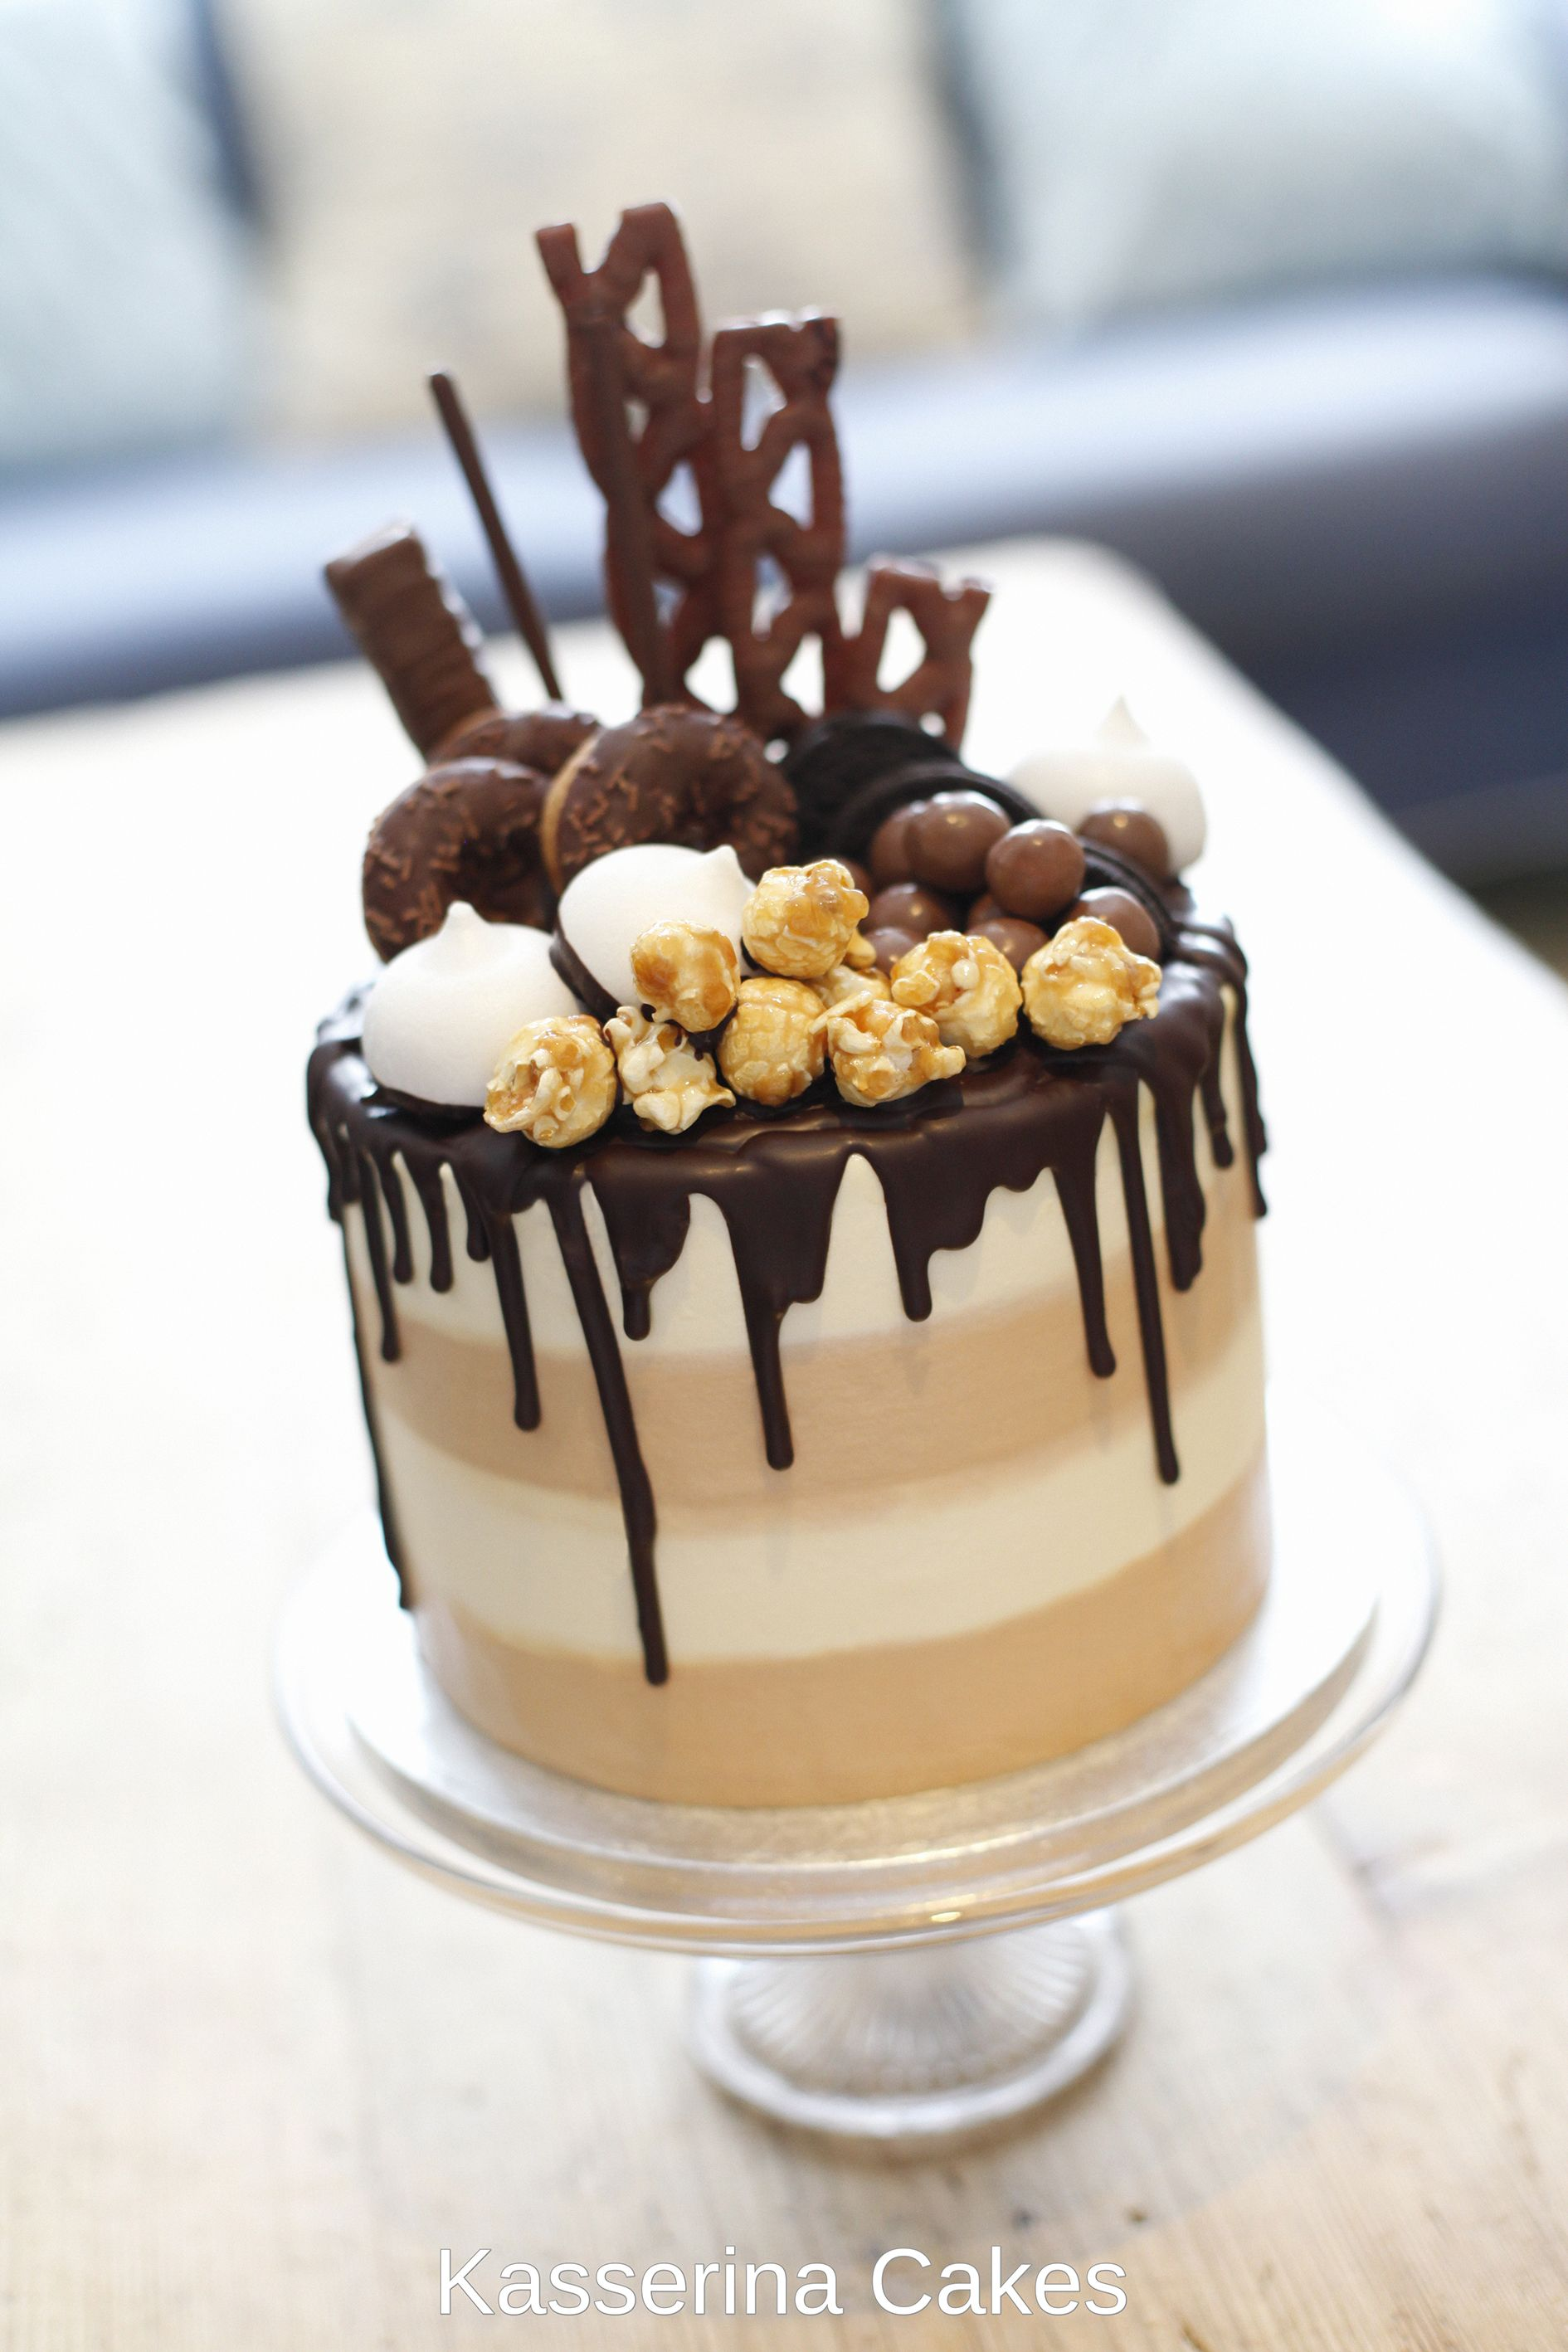 Chocolate and caramel candy cake by Kasserina Cakes in ...